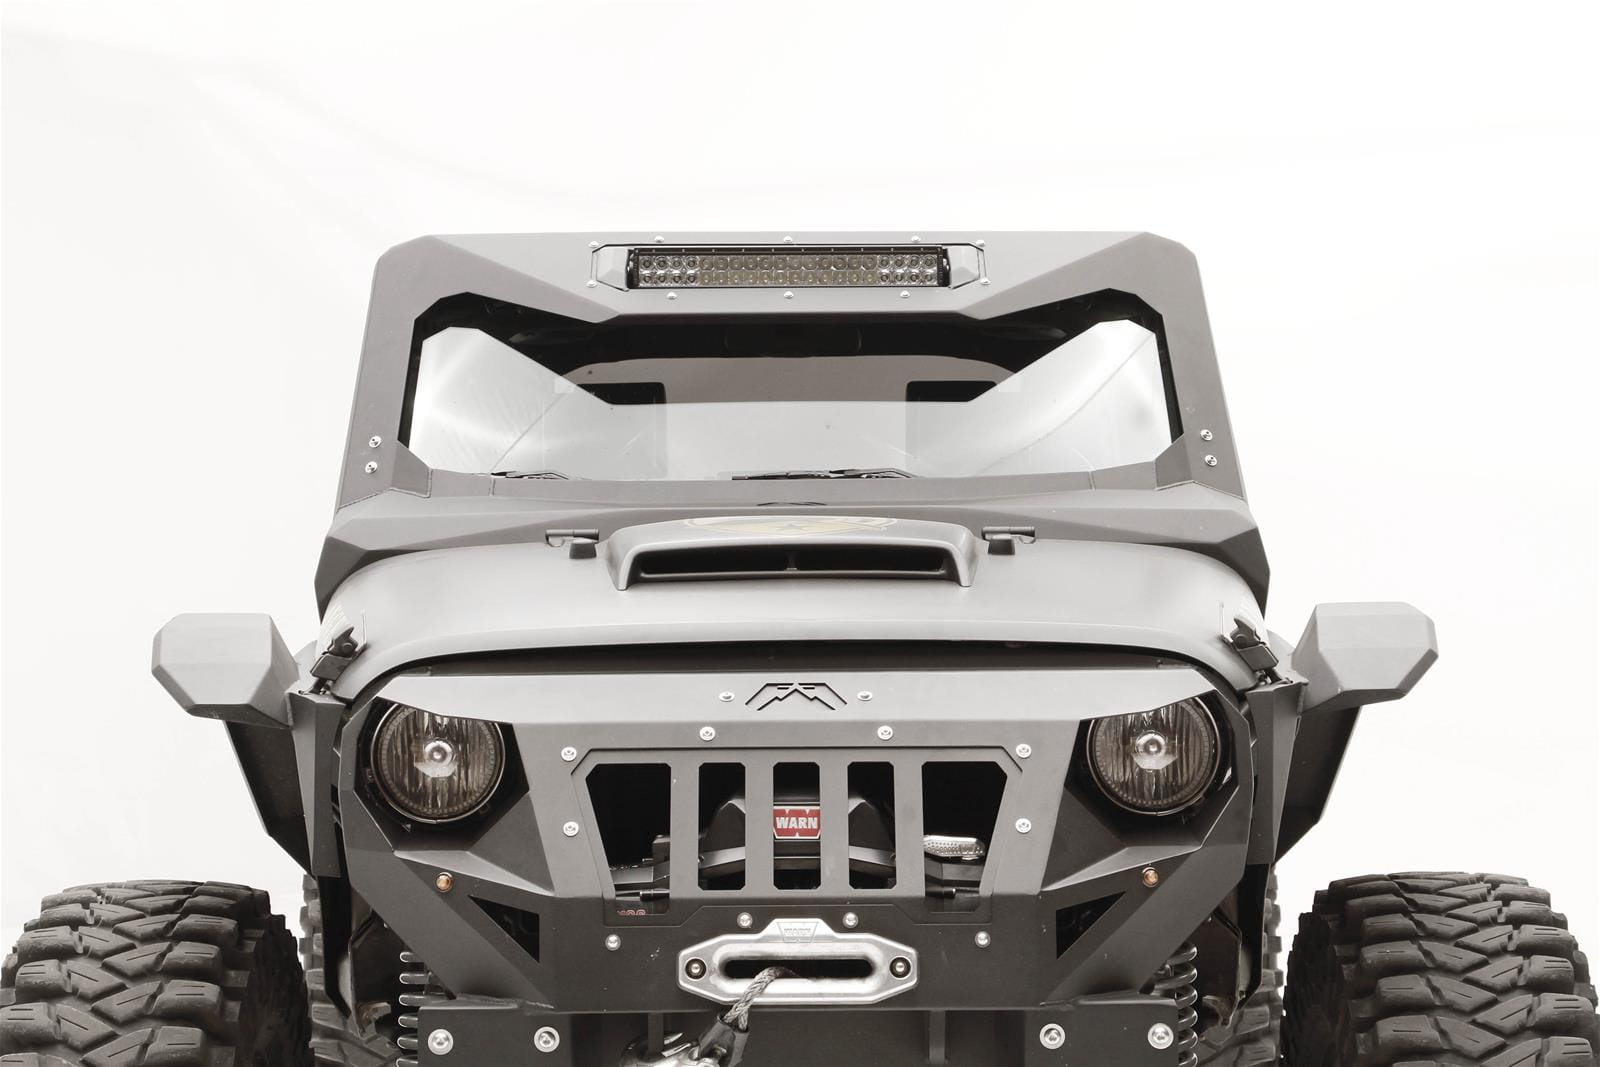 Jeep JK 2007-2017 Front ViCowl 20 Insert;5;ЭКСТЕРЬЕР;КАПОТЫ;;https://static.summitracing.com/global/images/prod/xlarge/ffi-jk3022-1_us_xl.jpg ;https://static.summitracing.com/global/images/prod/xlarge/ffi-jk3022-1_us_xl.jpg ;https://static.summitracing.co